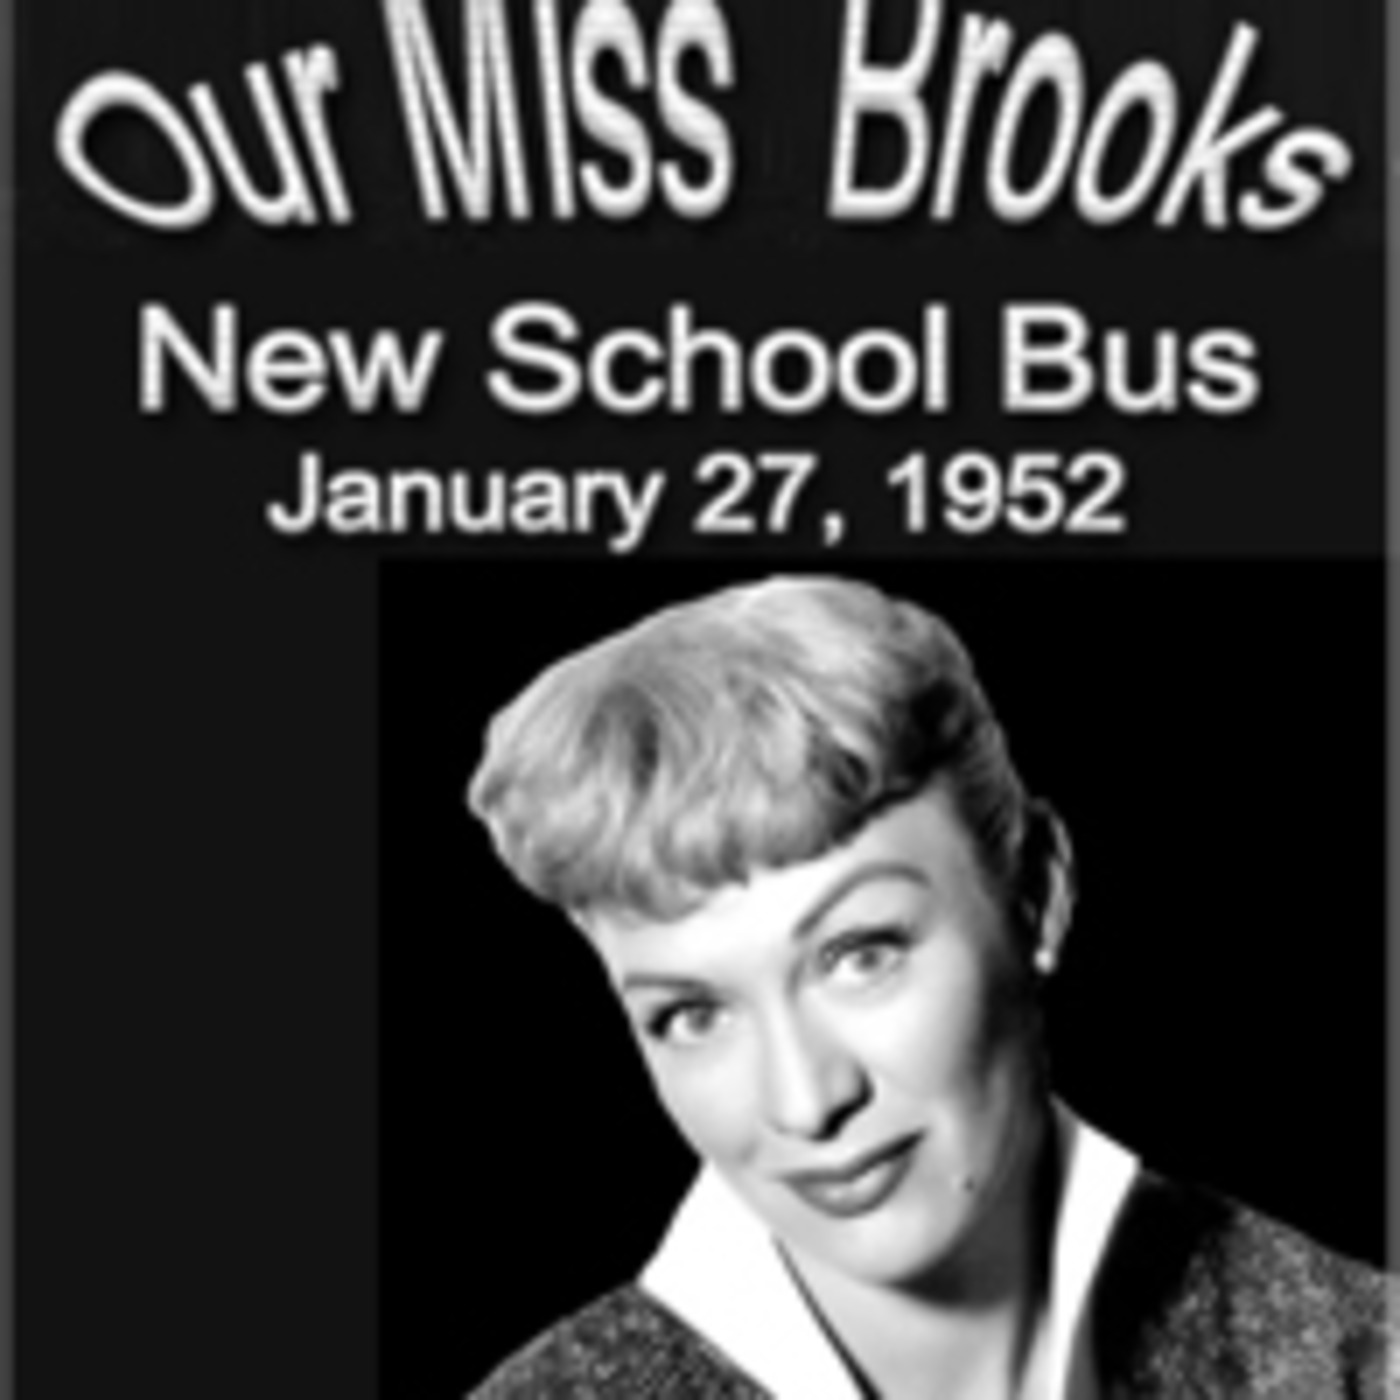 Our Miss Brooks - New School Bus (01-27-52)